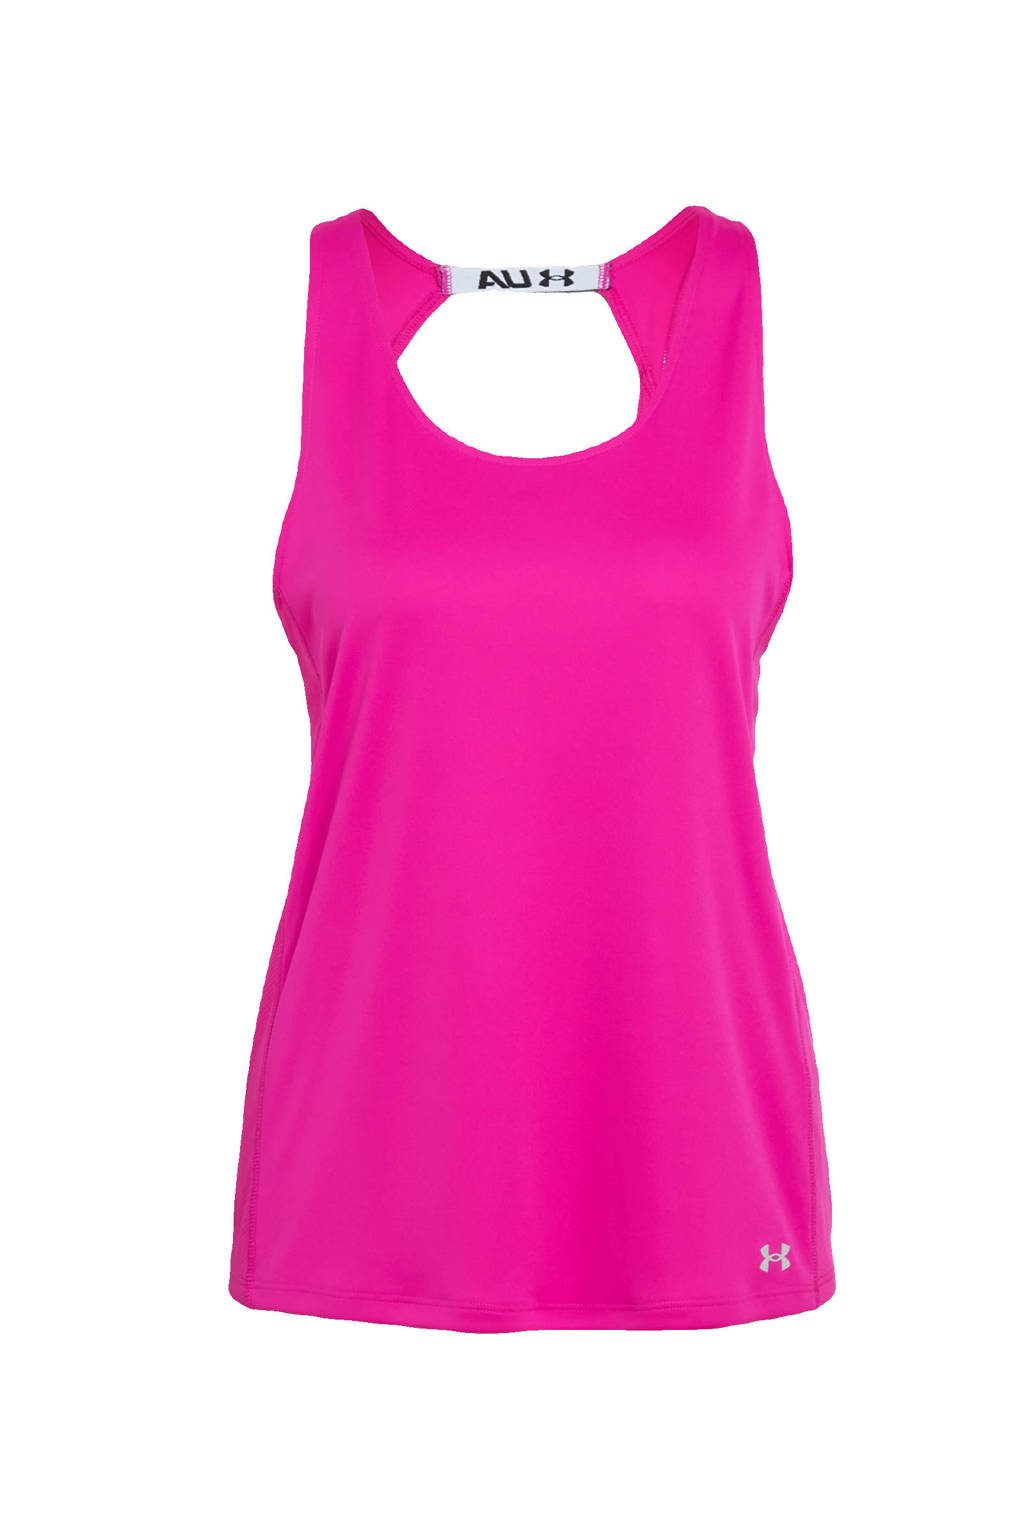 Under Armour hardlooptop roze, Roze